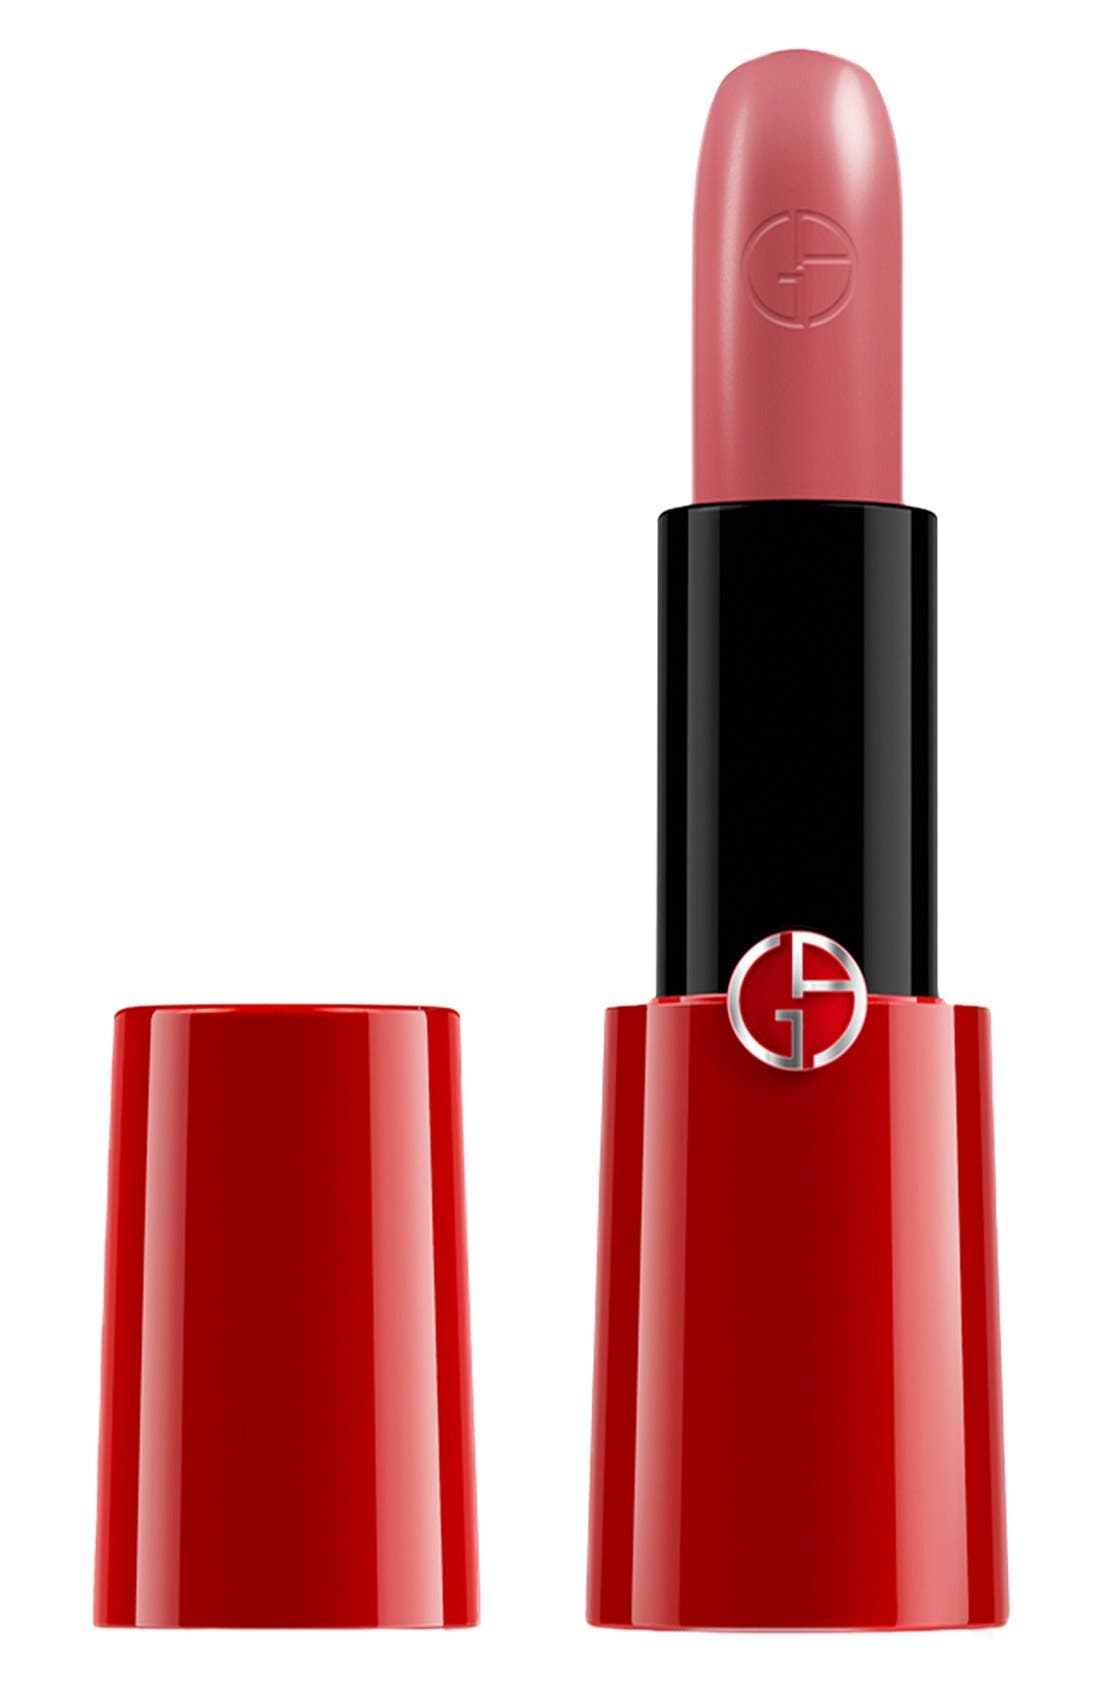 'Rouge Ecstasy' Lipstick,                             Main thumbnail 1, color,                             508 DAYBREAK